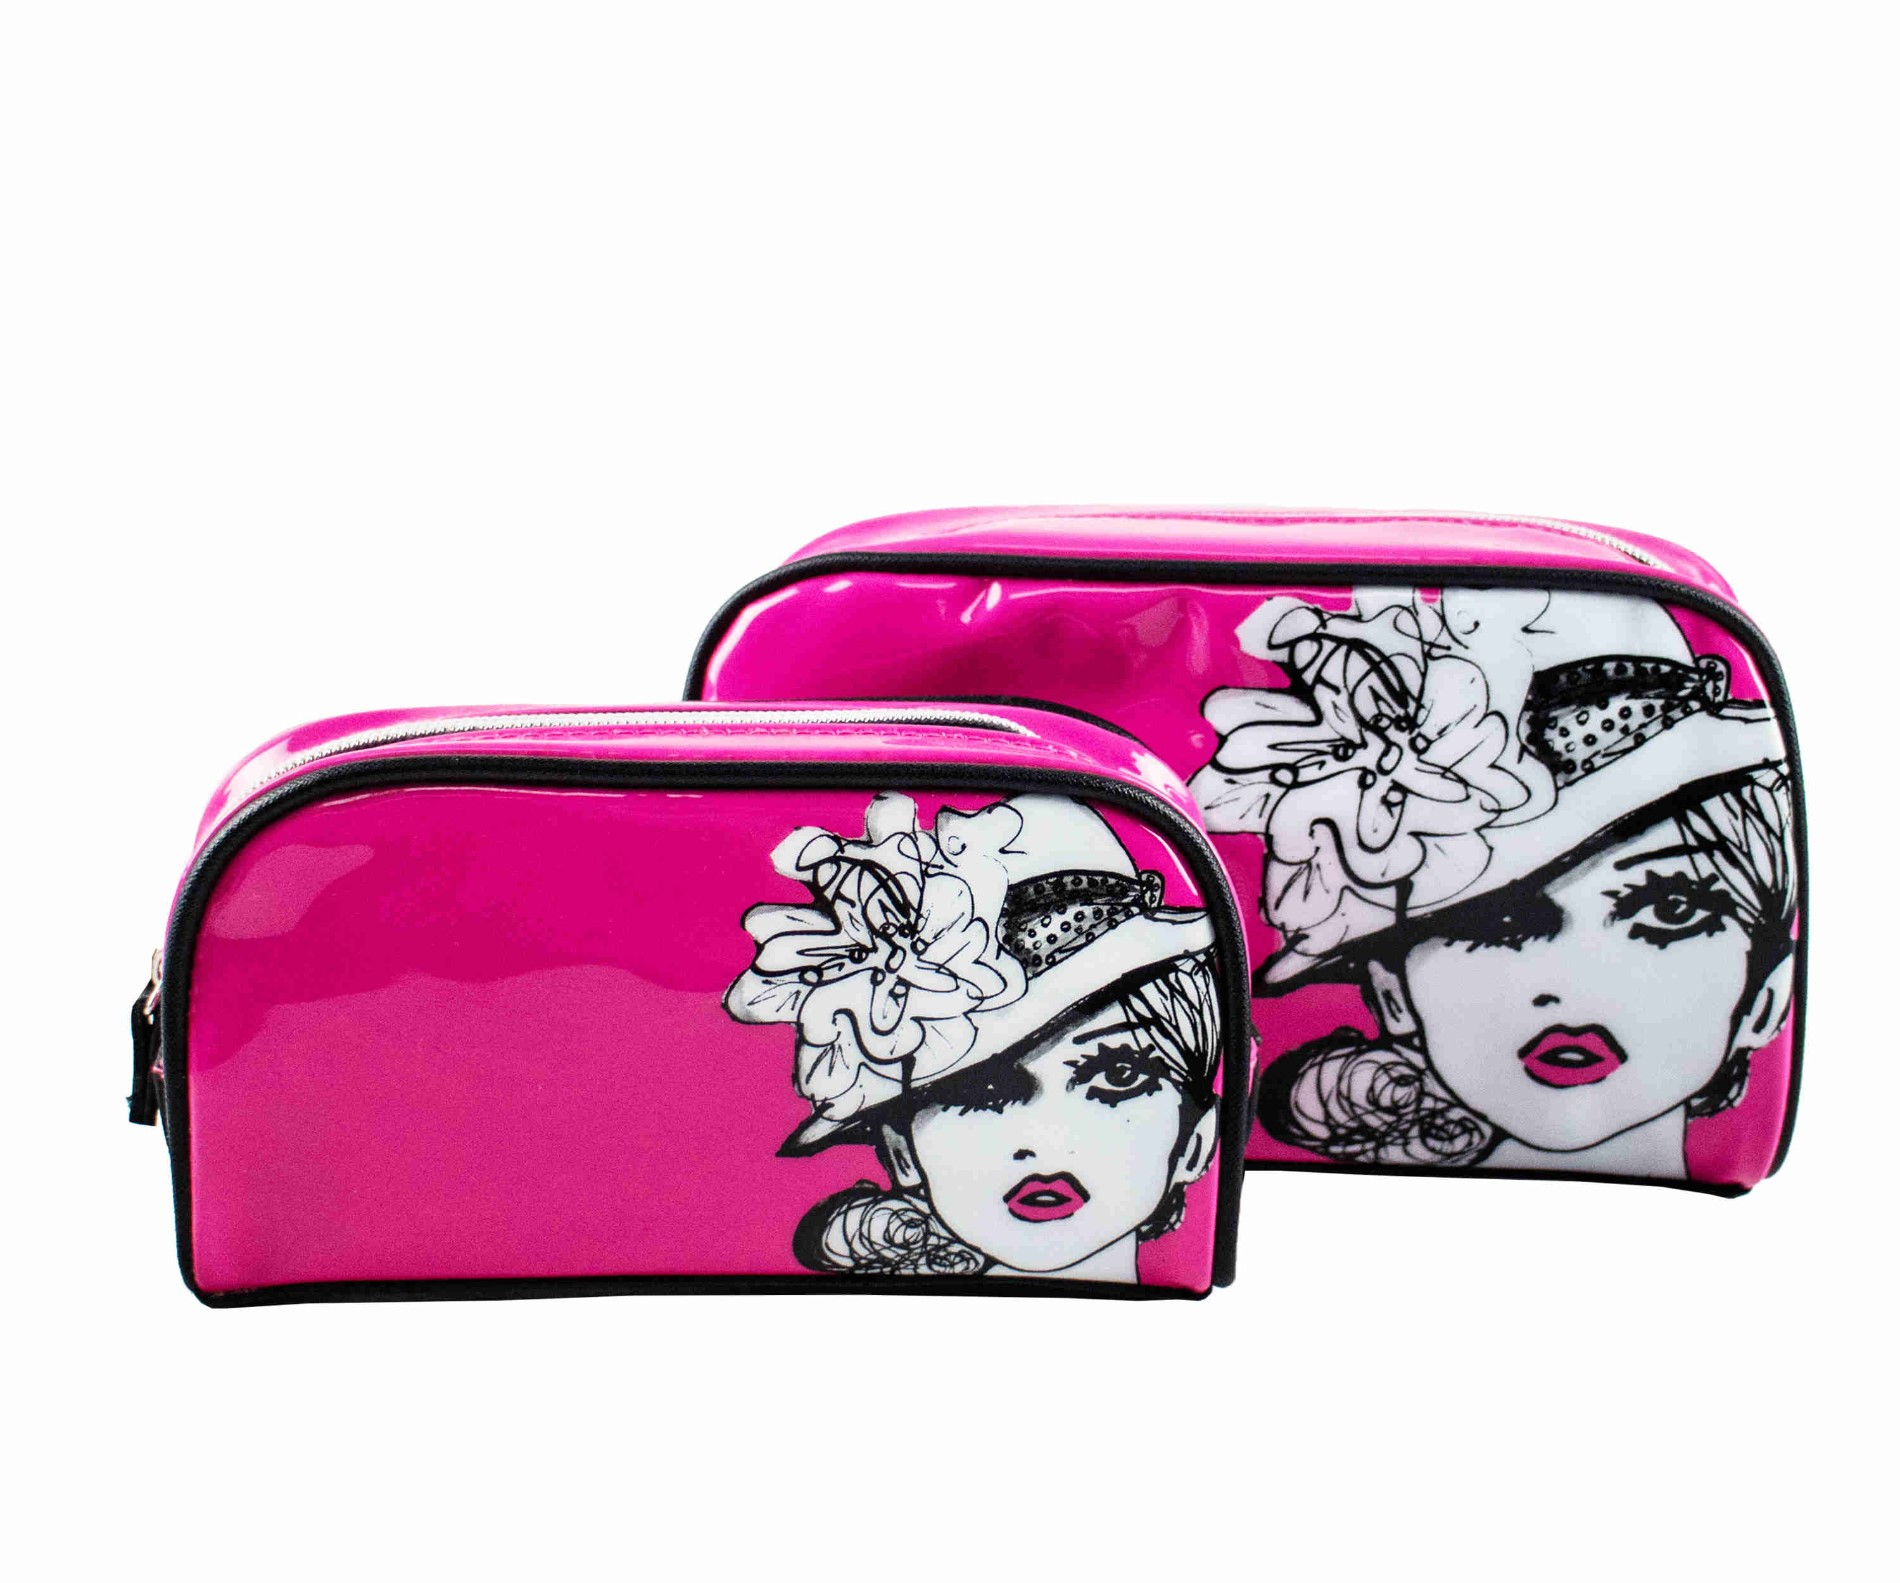 Fashion leather cosmetic bag